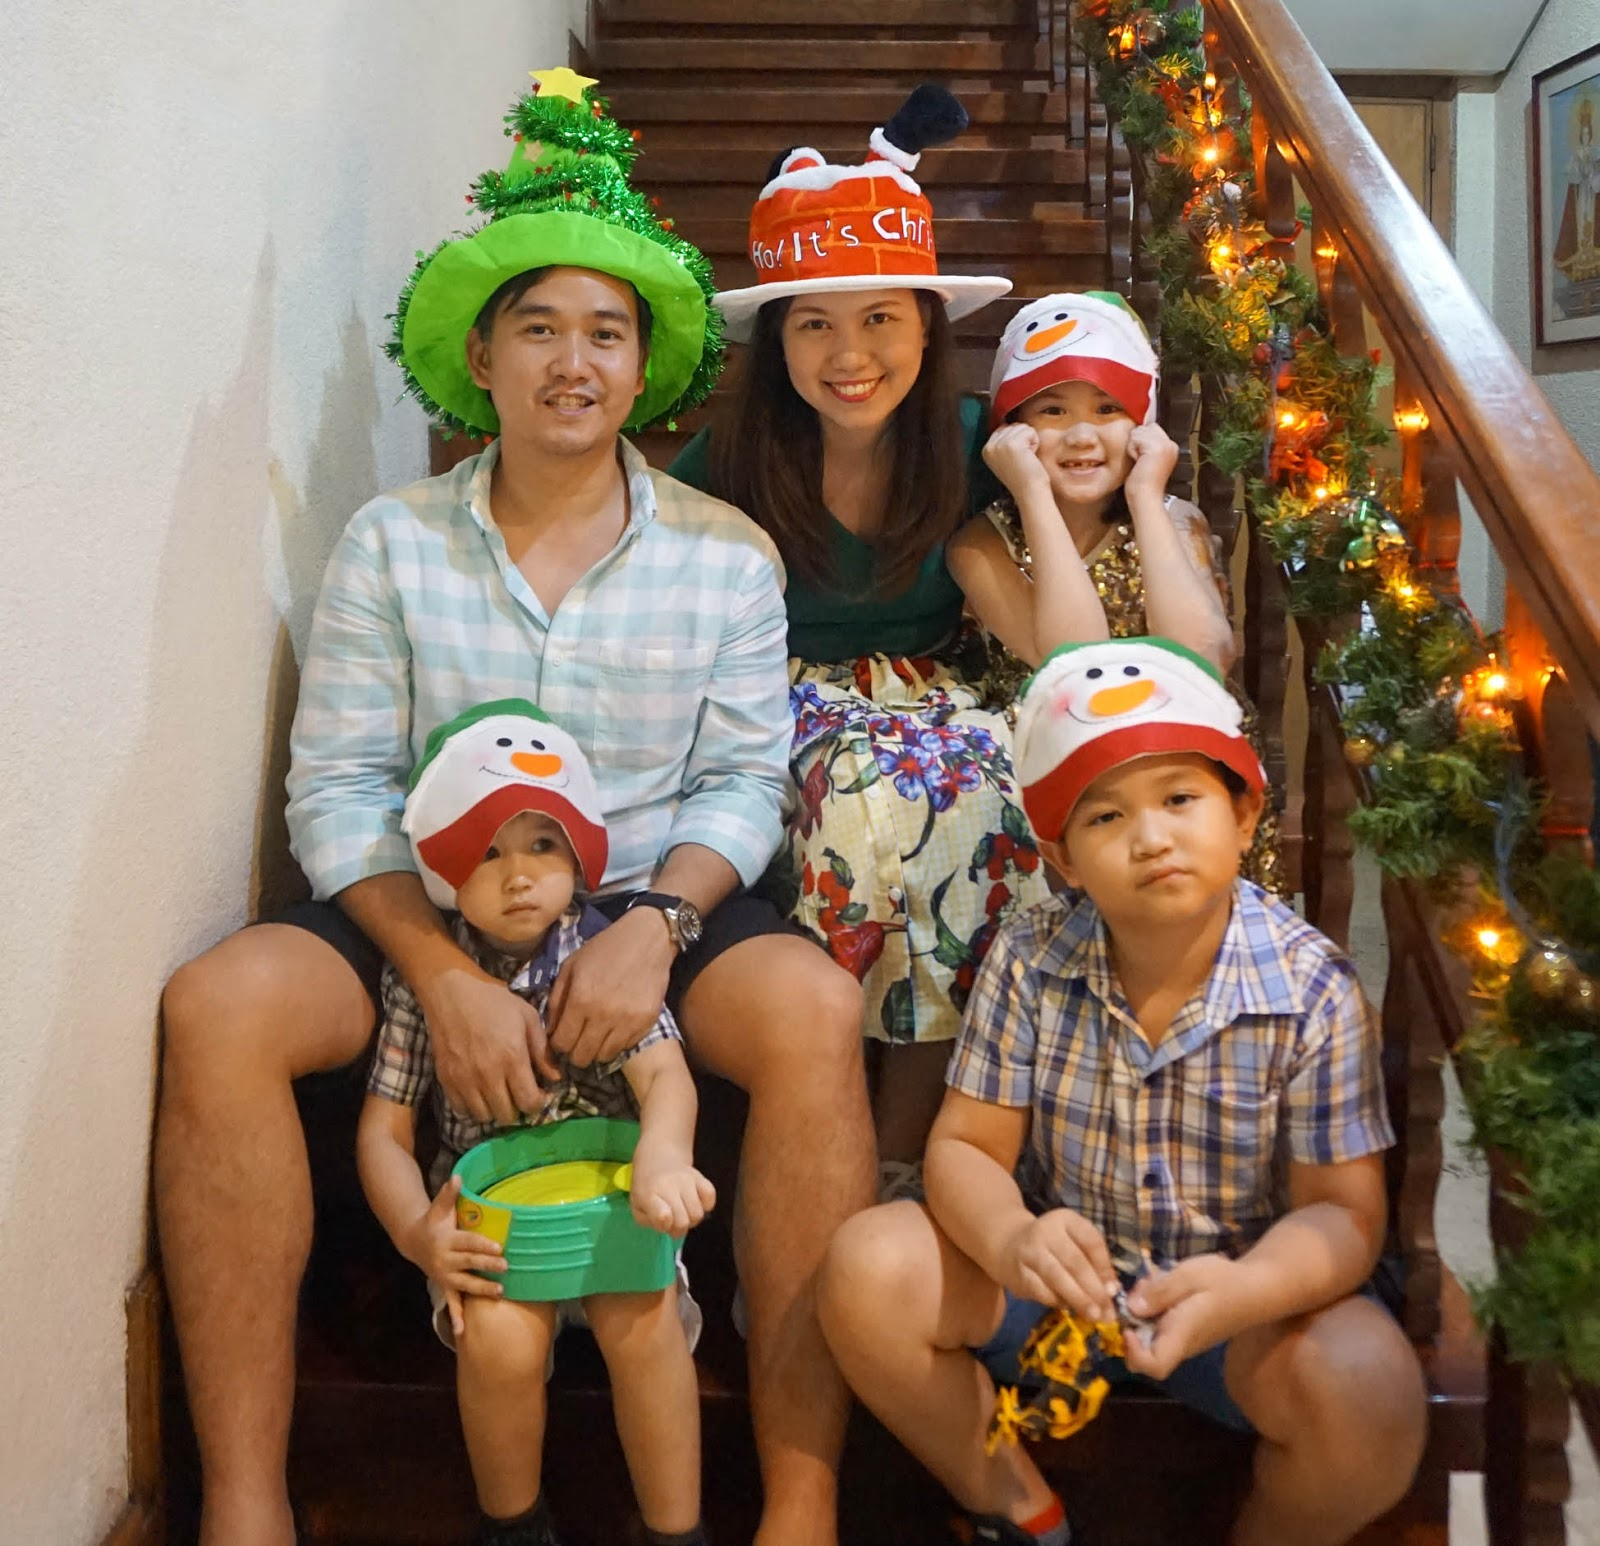 heres some of the other crazy hats our family wore